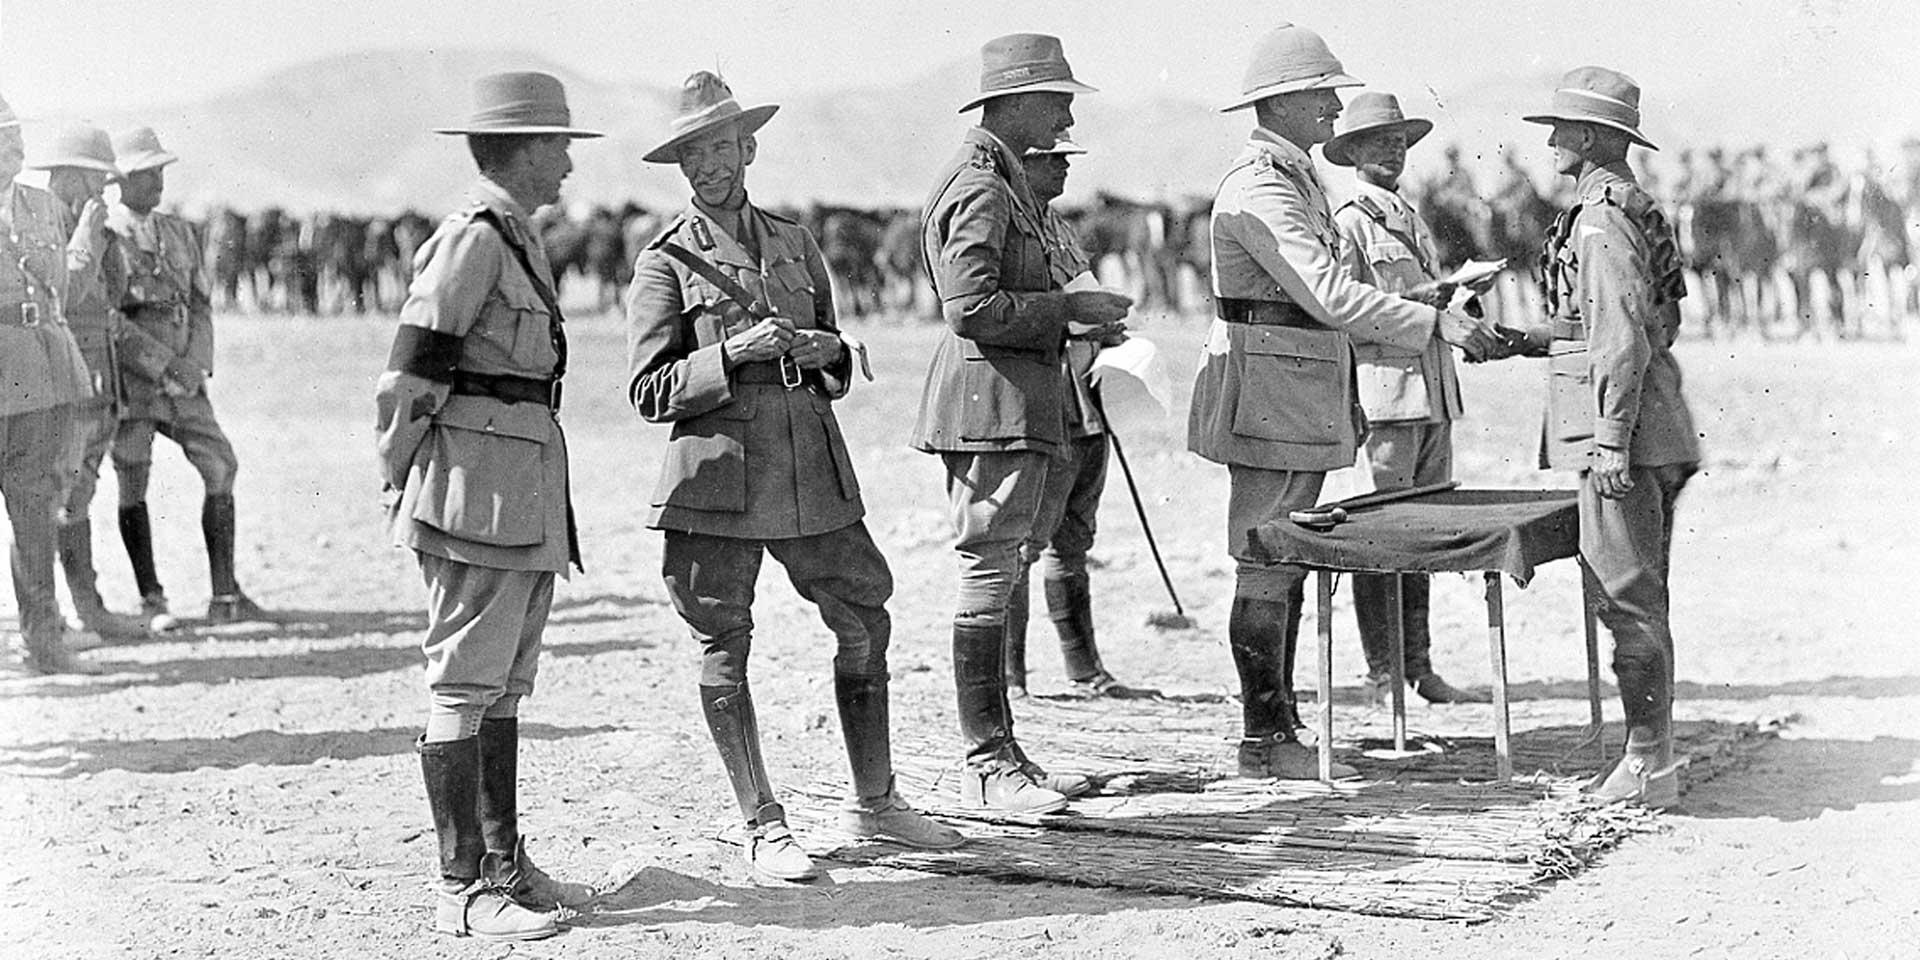 Presentation of medals by General Sir Edmund Allenby (third right) and Major-General Harry Chauvel, (second left), 1918